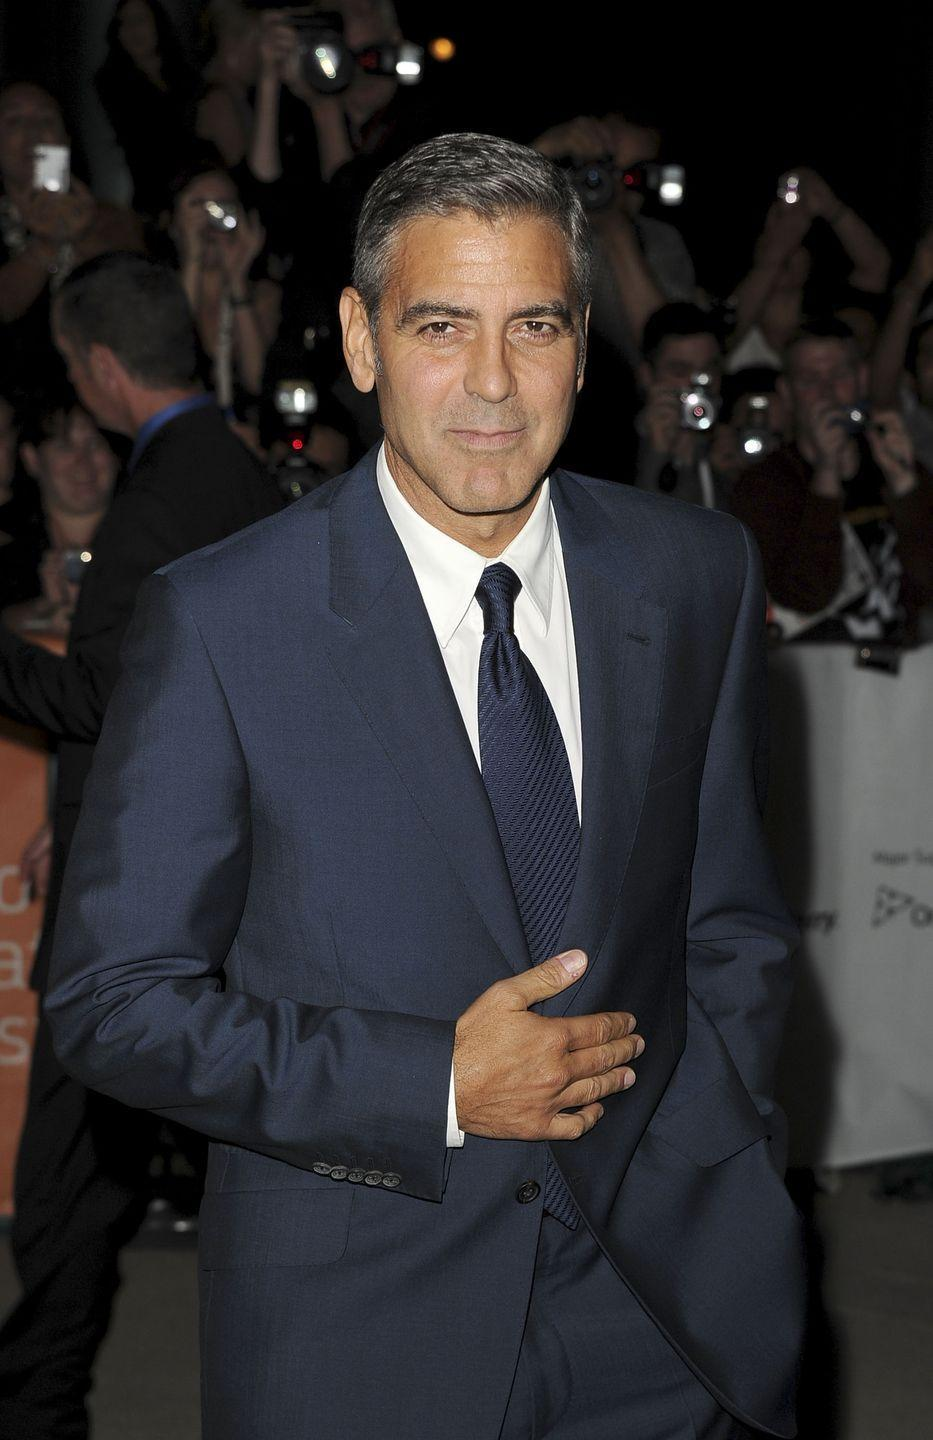 <p>George Clooney had long been one of Hollywood's most popular leading men, but his role in 2011's <em>The</em> <em>Ides of March</em> was just another feather in the star's cap. </p>